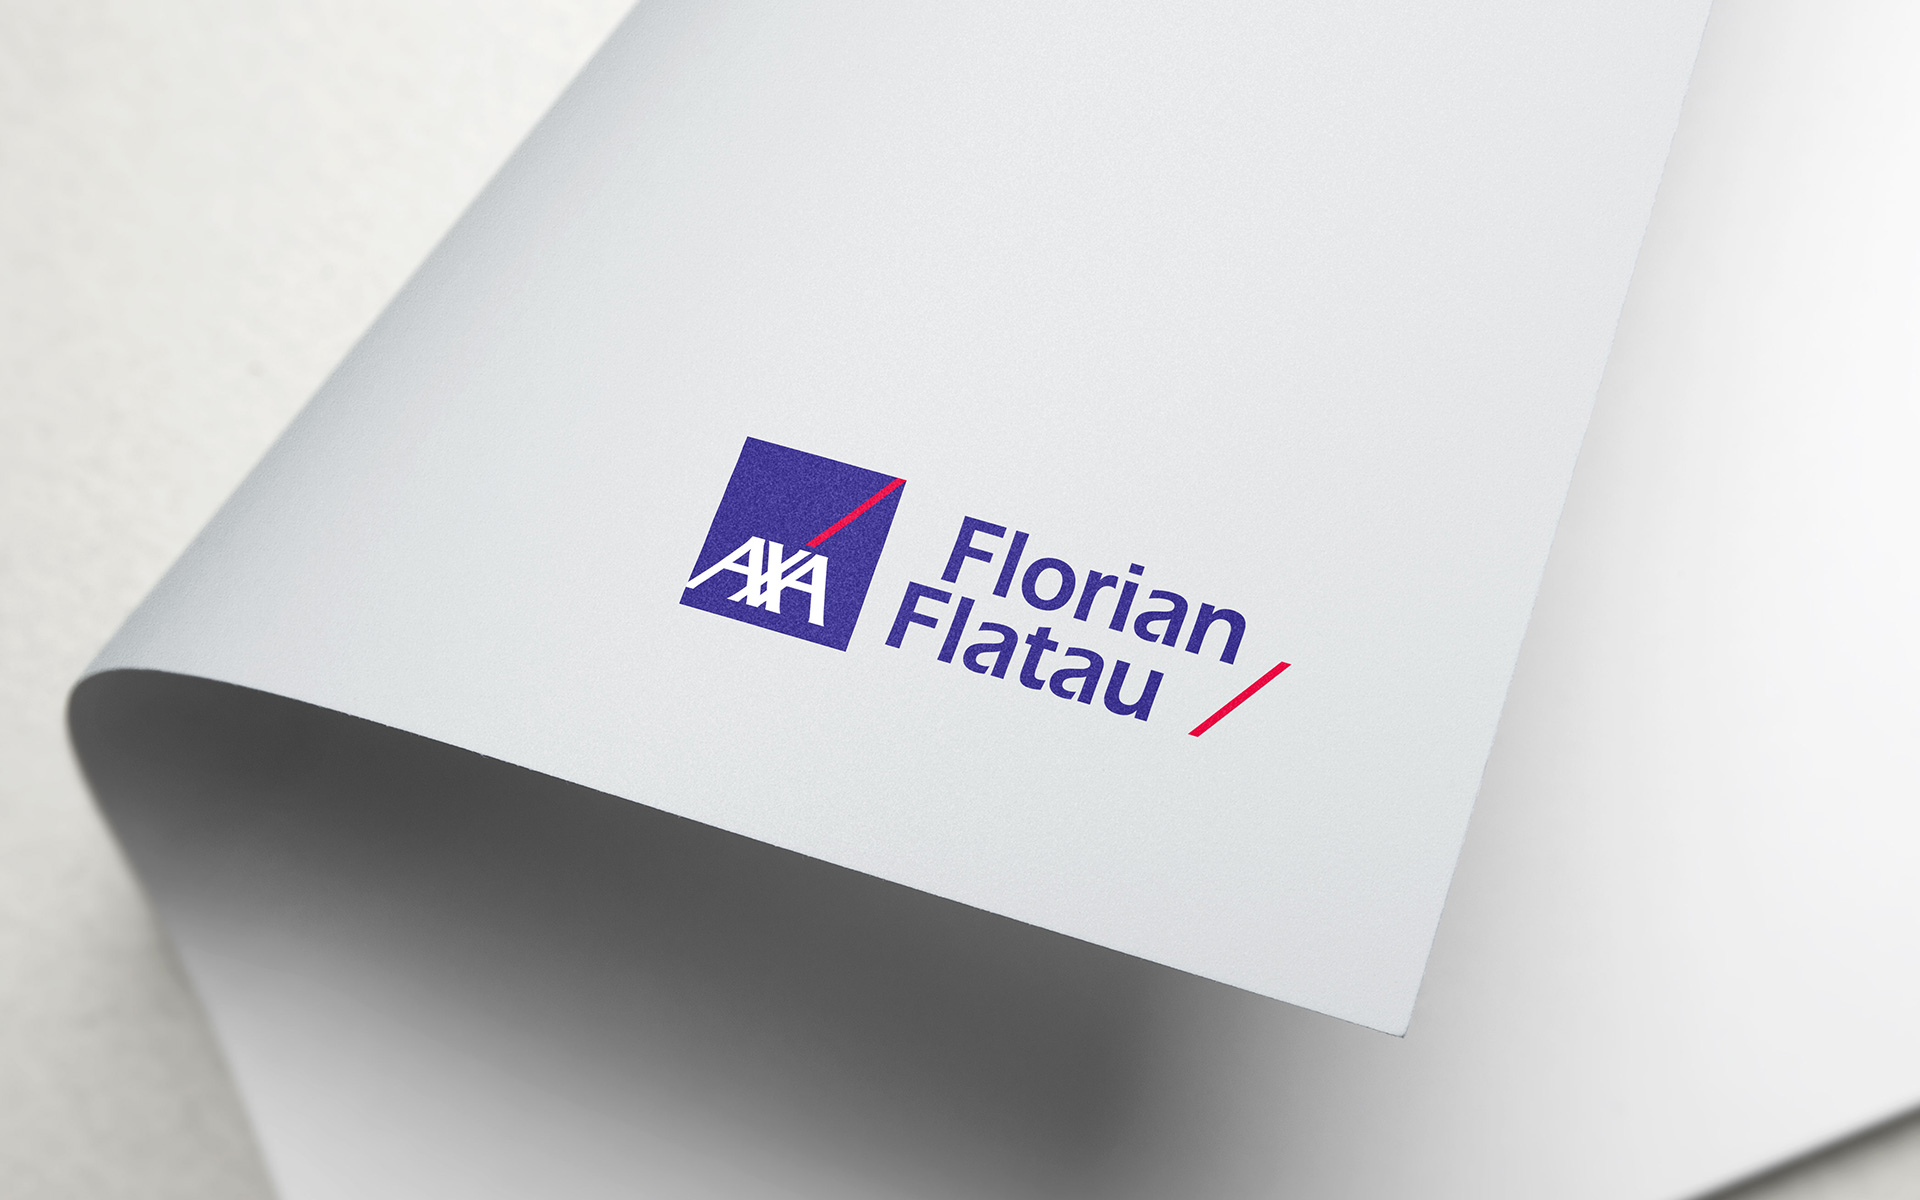 stay_golden-axa-florian_flatau-logotype-01